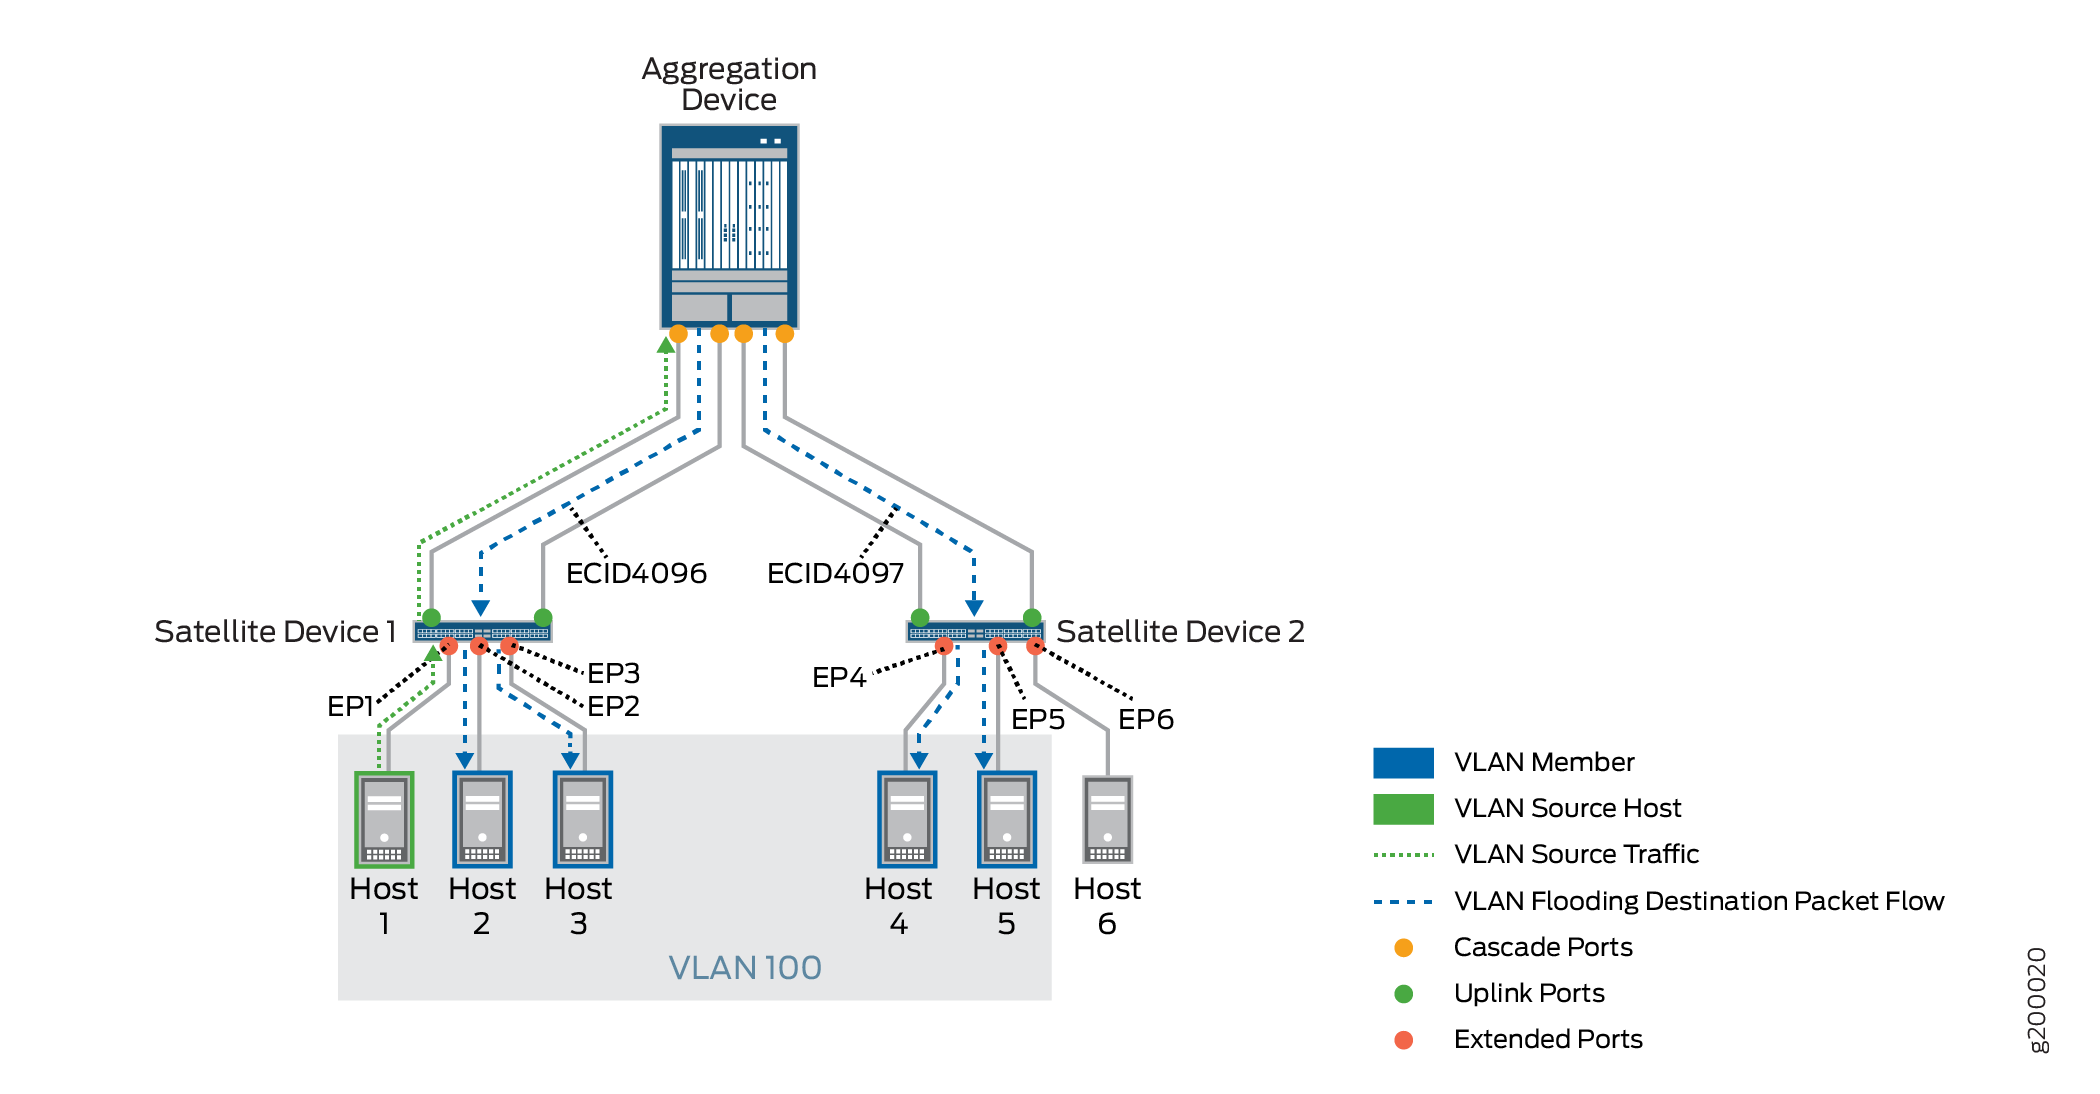 Local Replication with VLAN Flooding